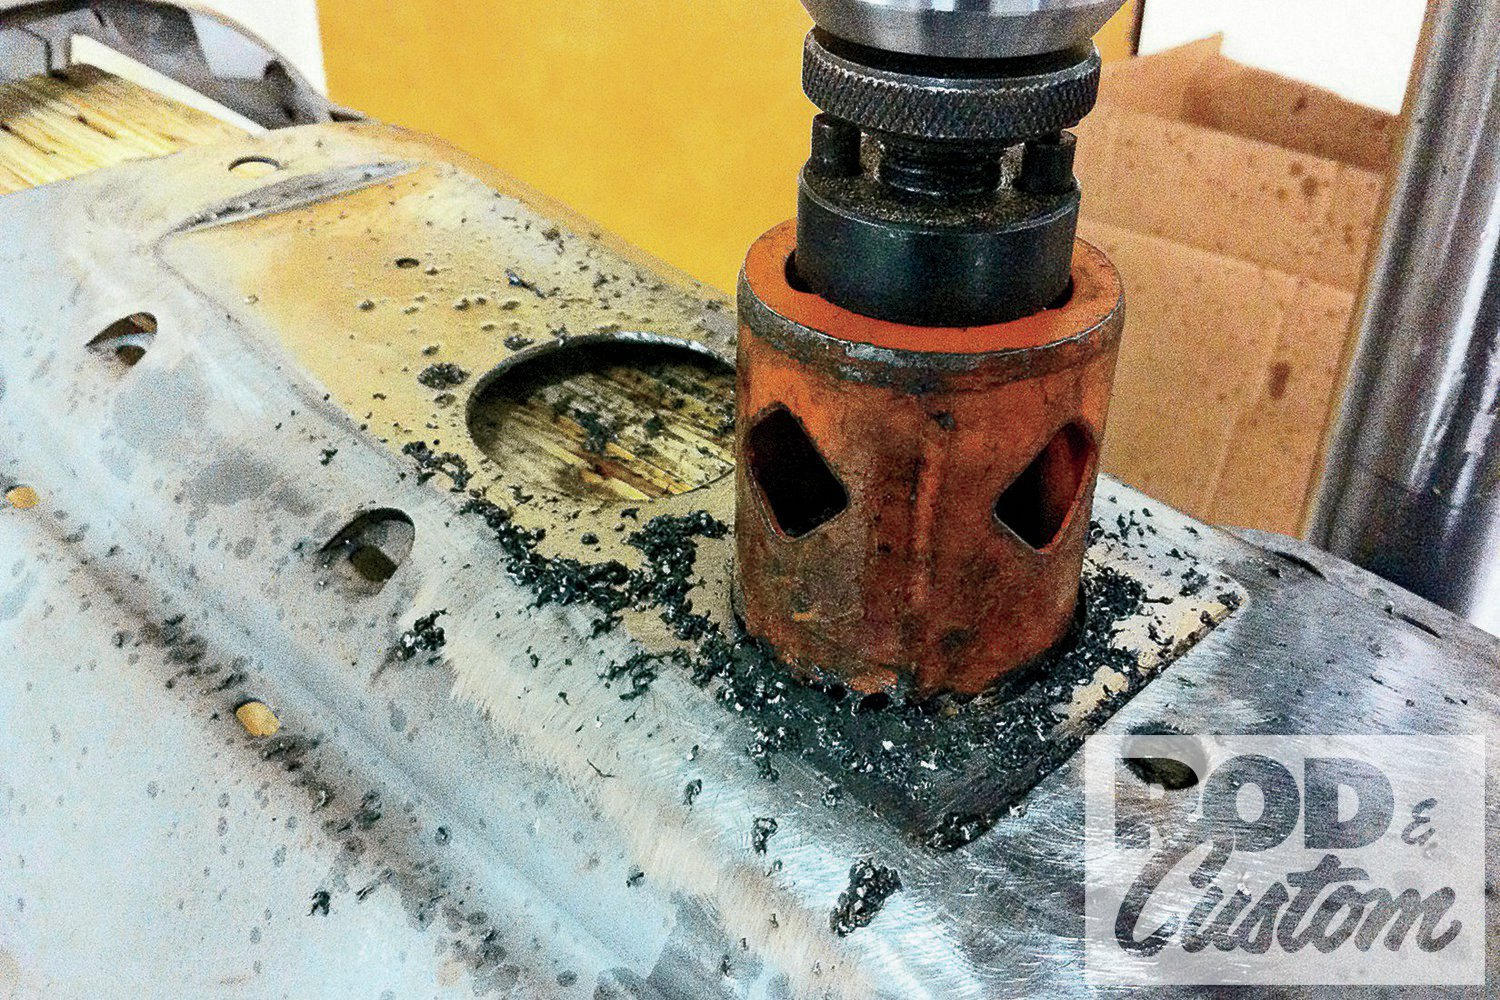 A holesaw in a drill press was used to cut out the gauge holes, with a block of wood behind the dash.